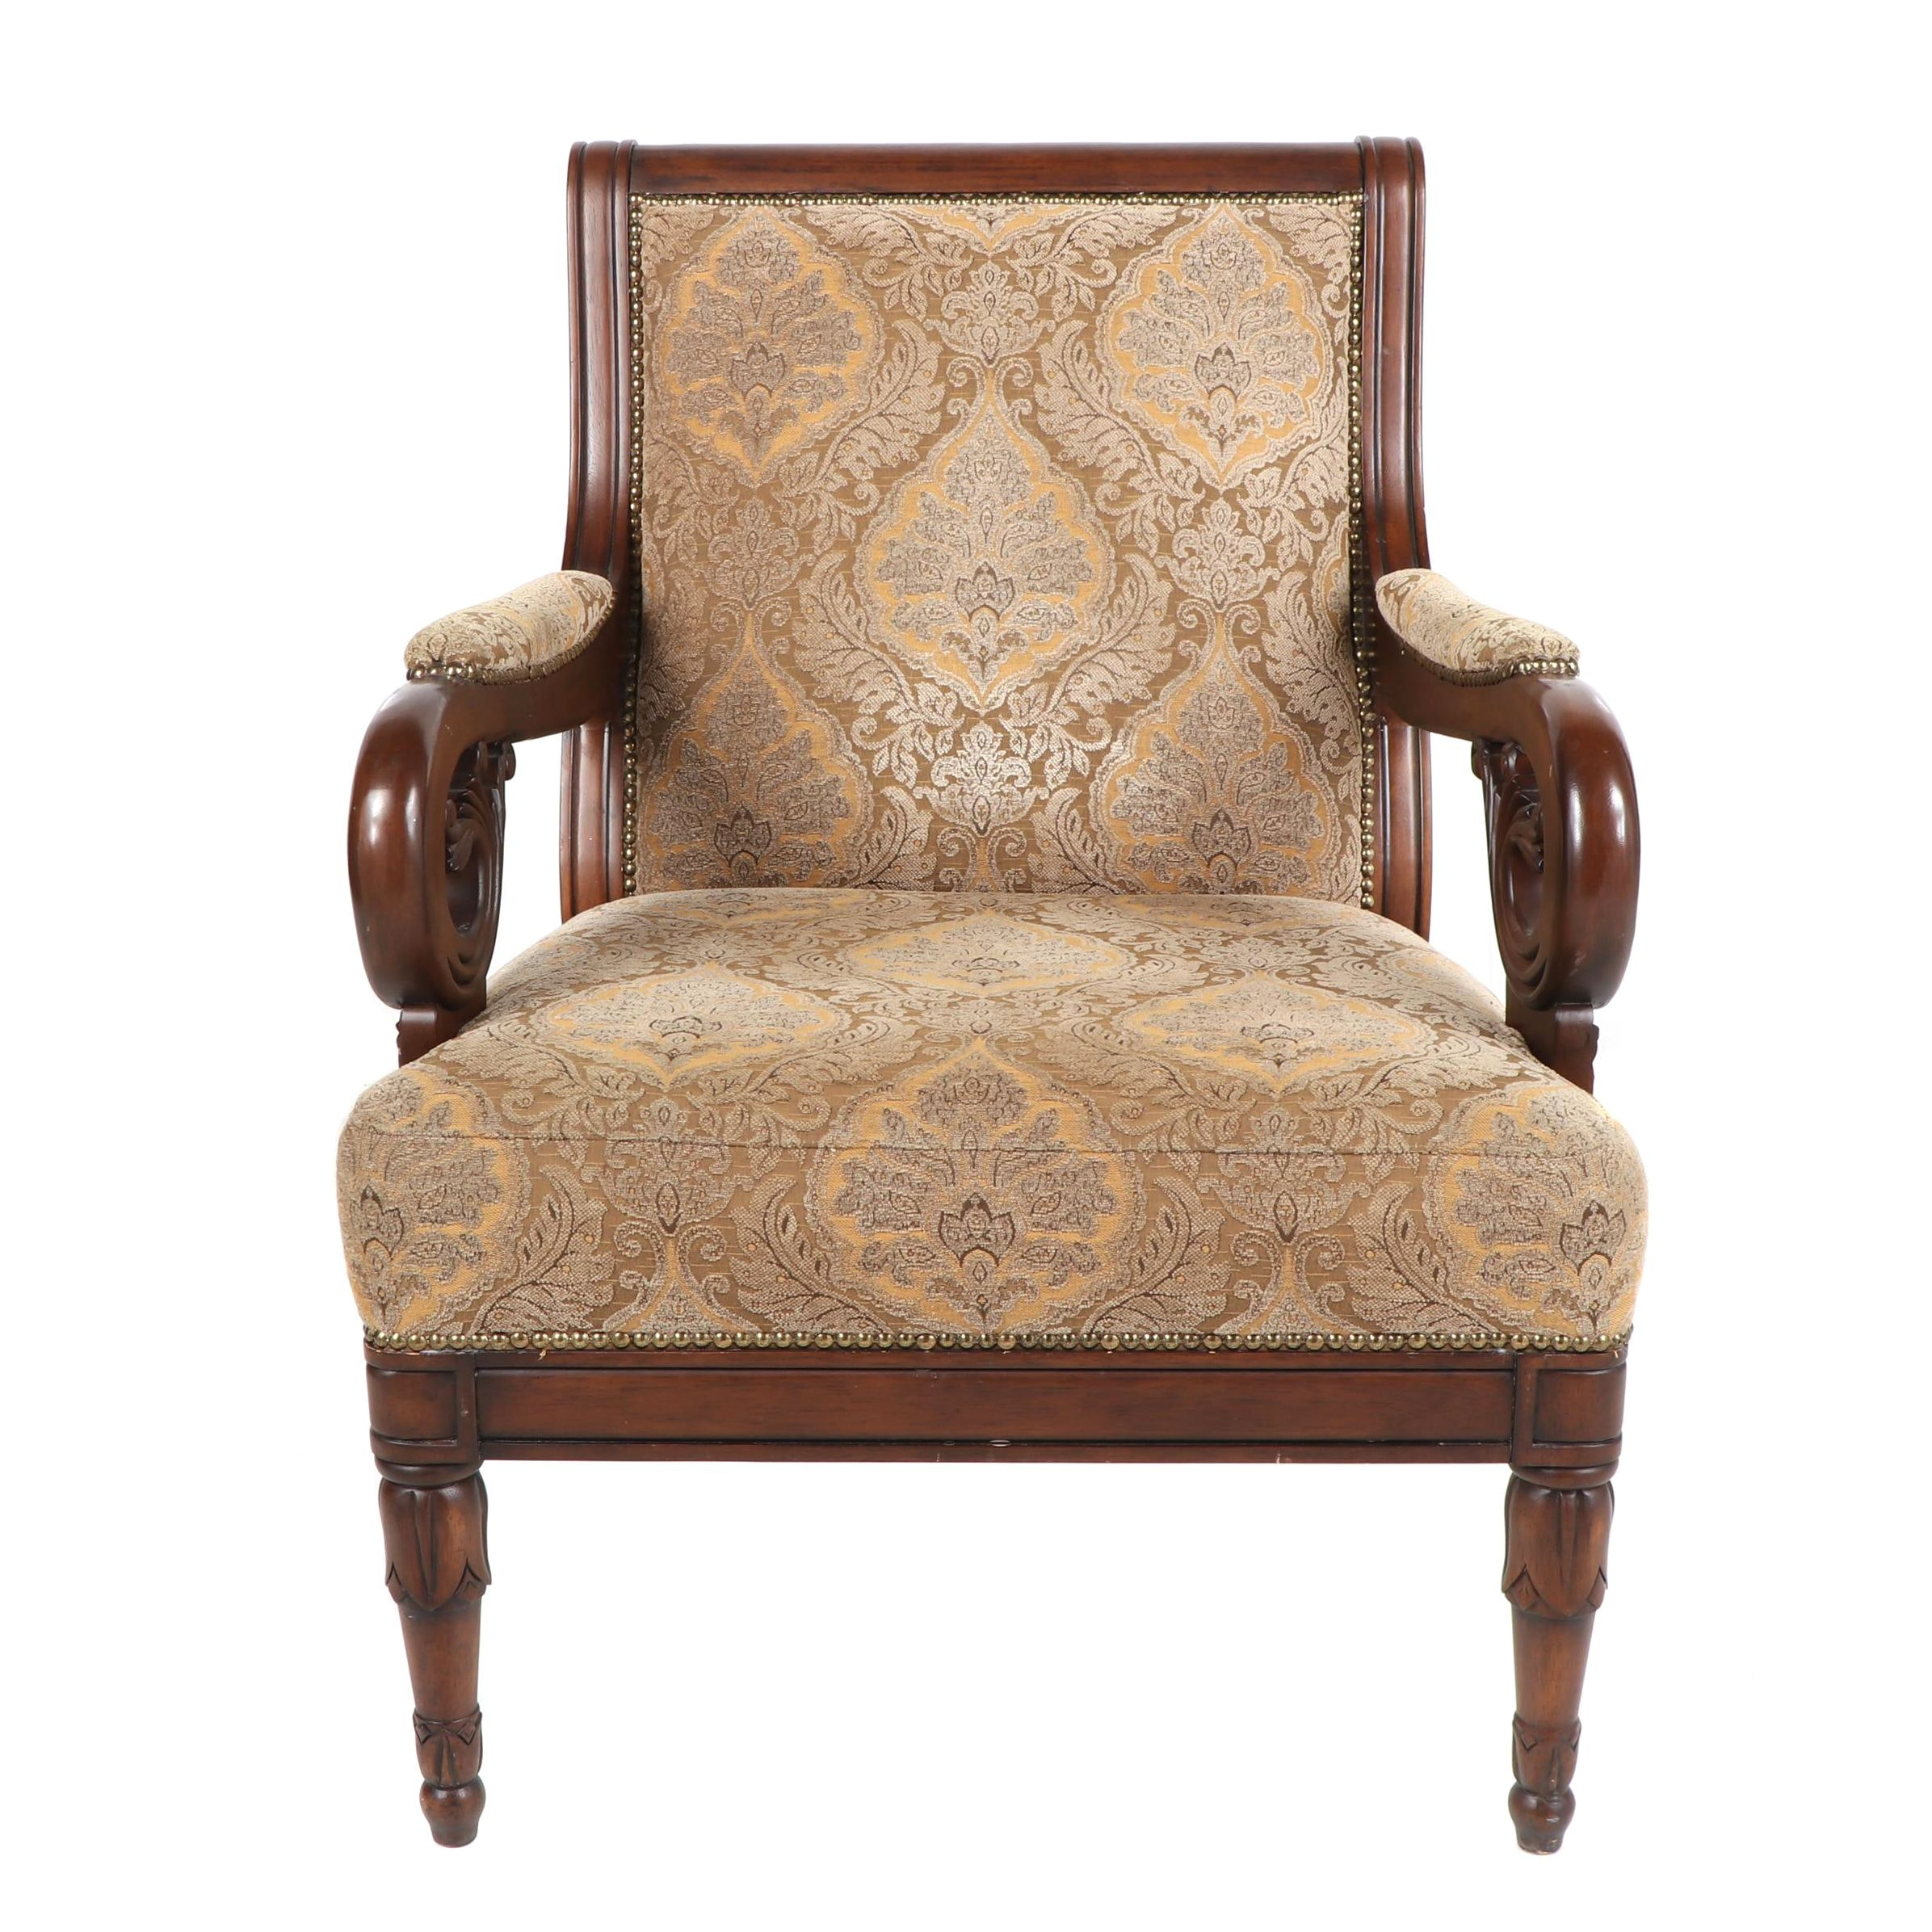 Contemporary Upholstered Armchair with Nailhead Trim